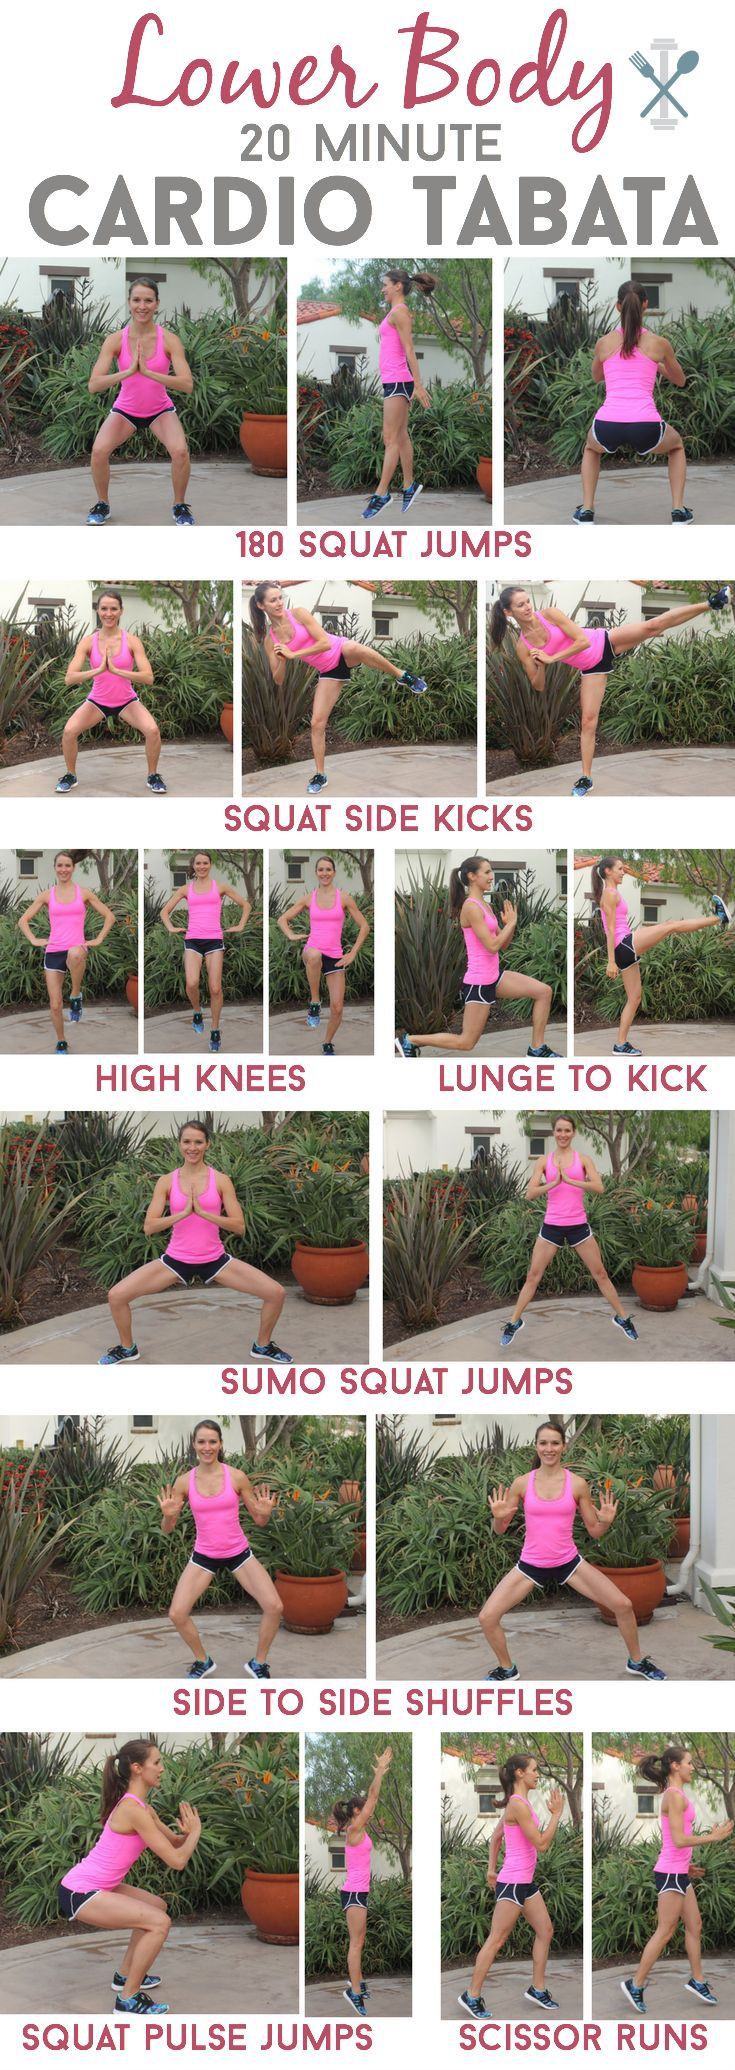 This 20 minute tabata workout is a serious calorie torcher to get your lower half in shape! No weights, no equipment